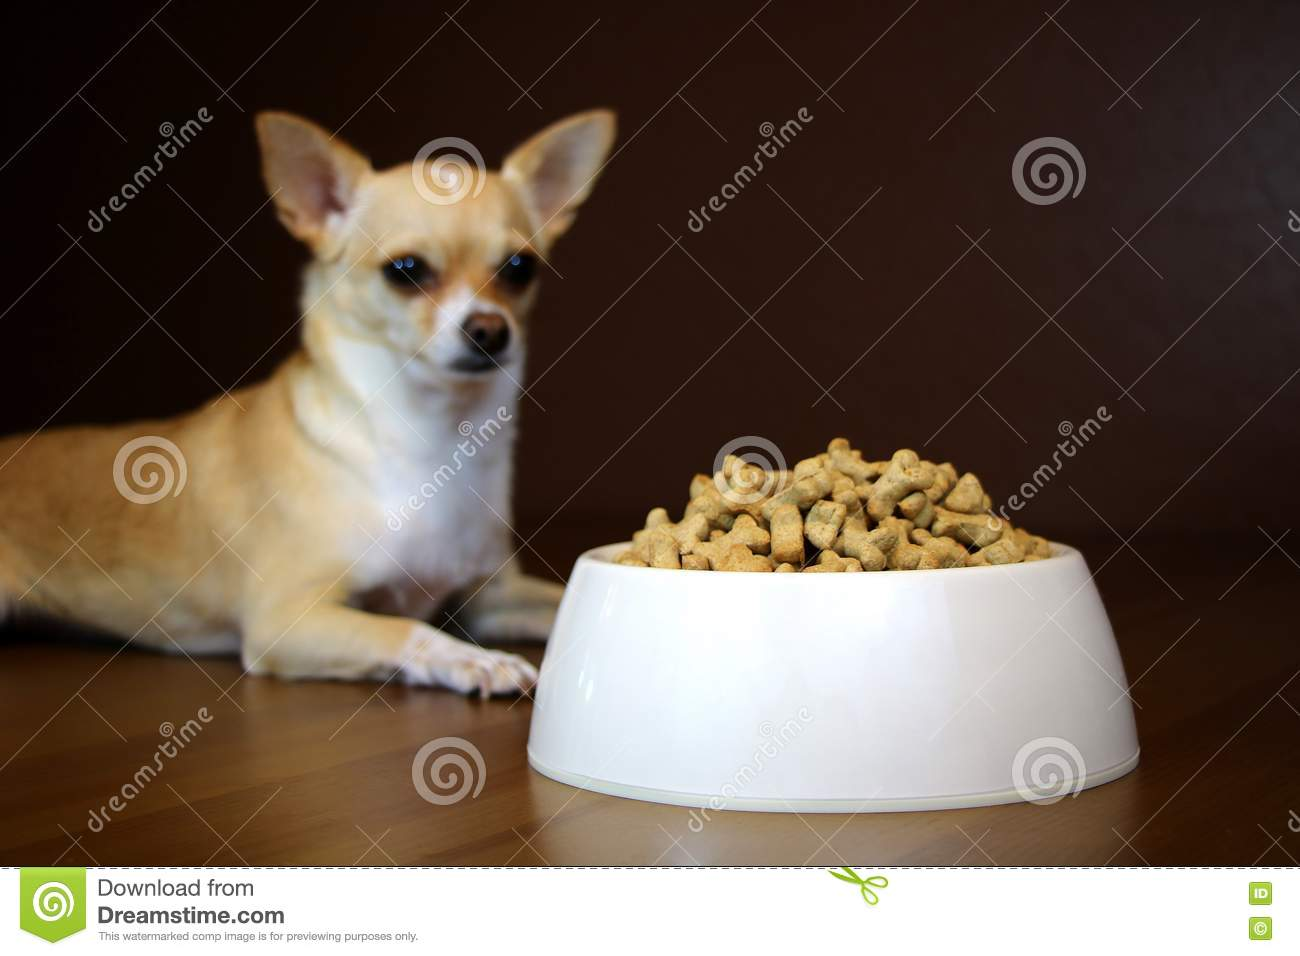 Dog Perspective of a Food Bowl